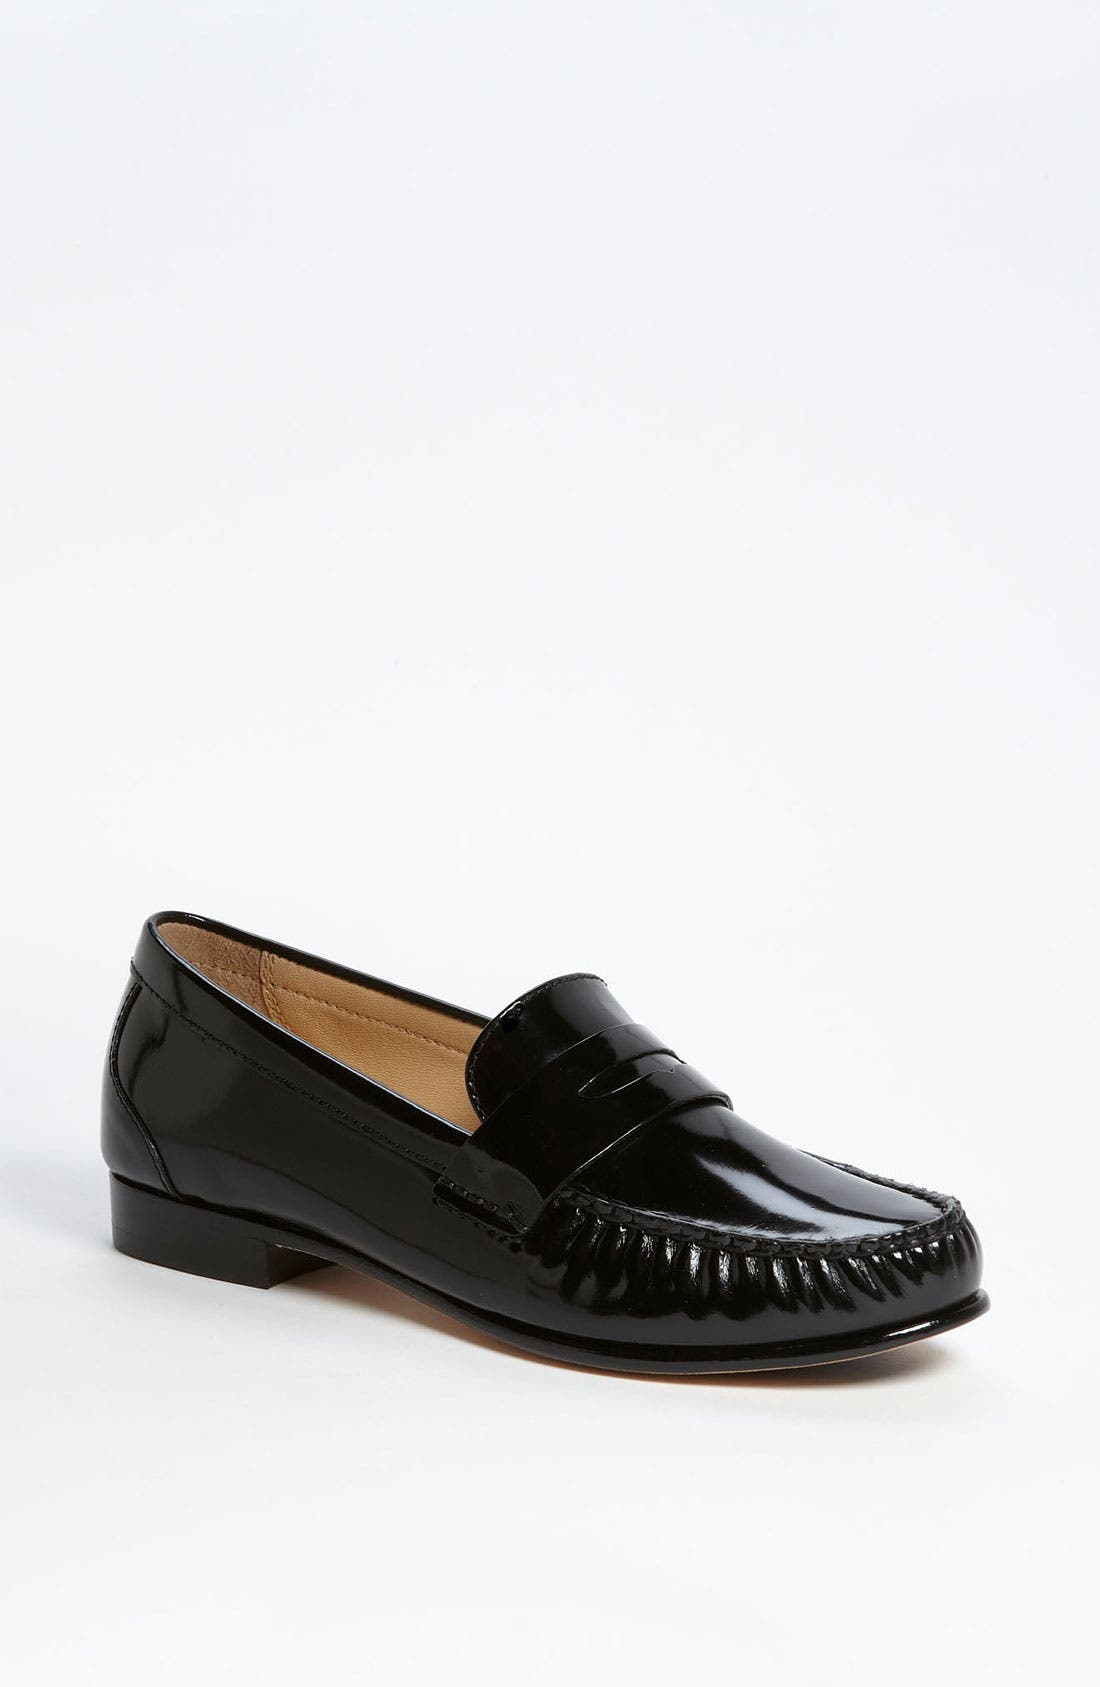 Alternate Image 1 Selected - Cole Haan 'Monroe' Penny Loafer